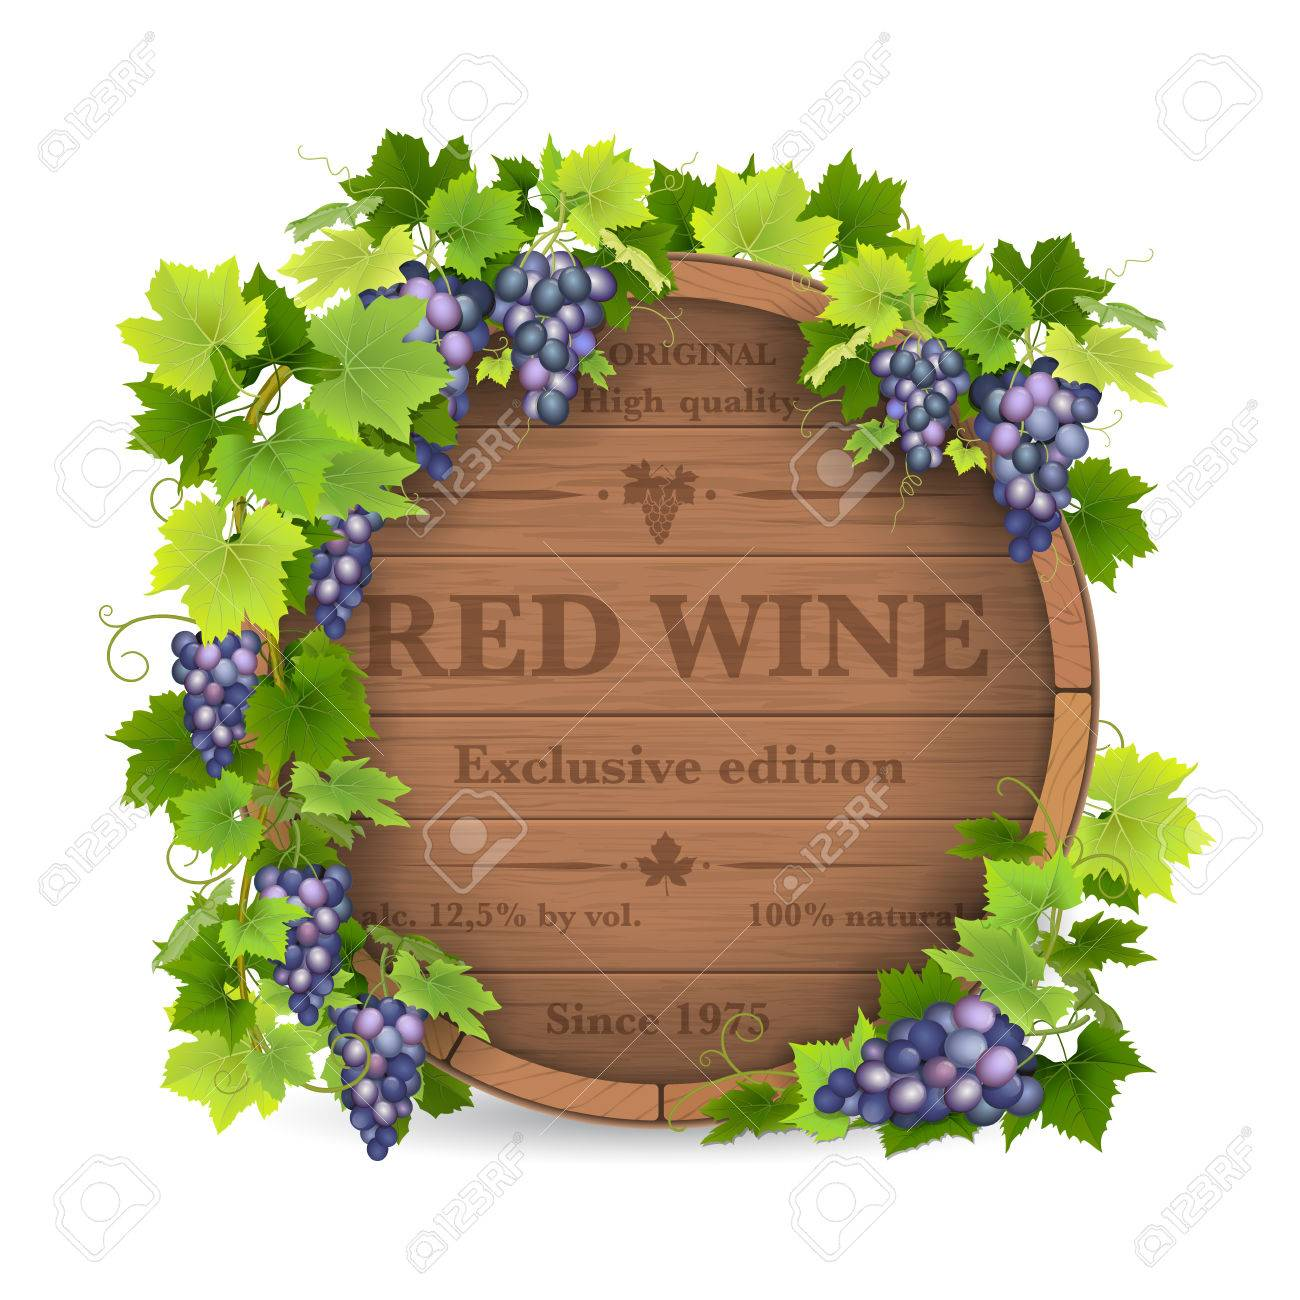 Barrels for wine and vine with grapes. Stock Vector - 51579978